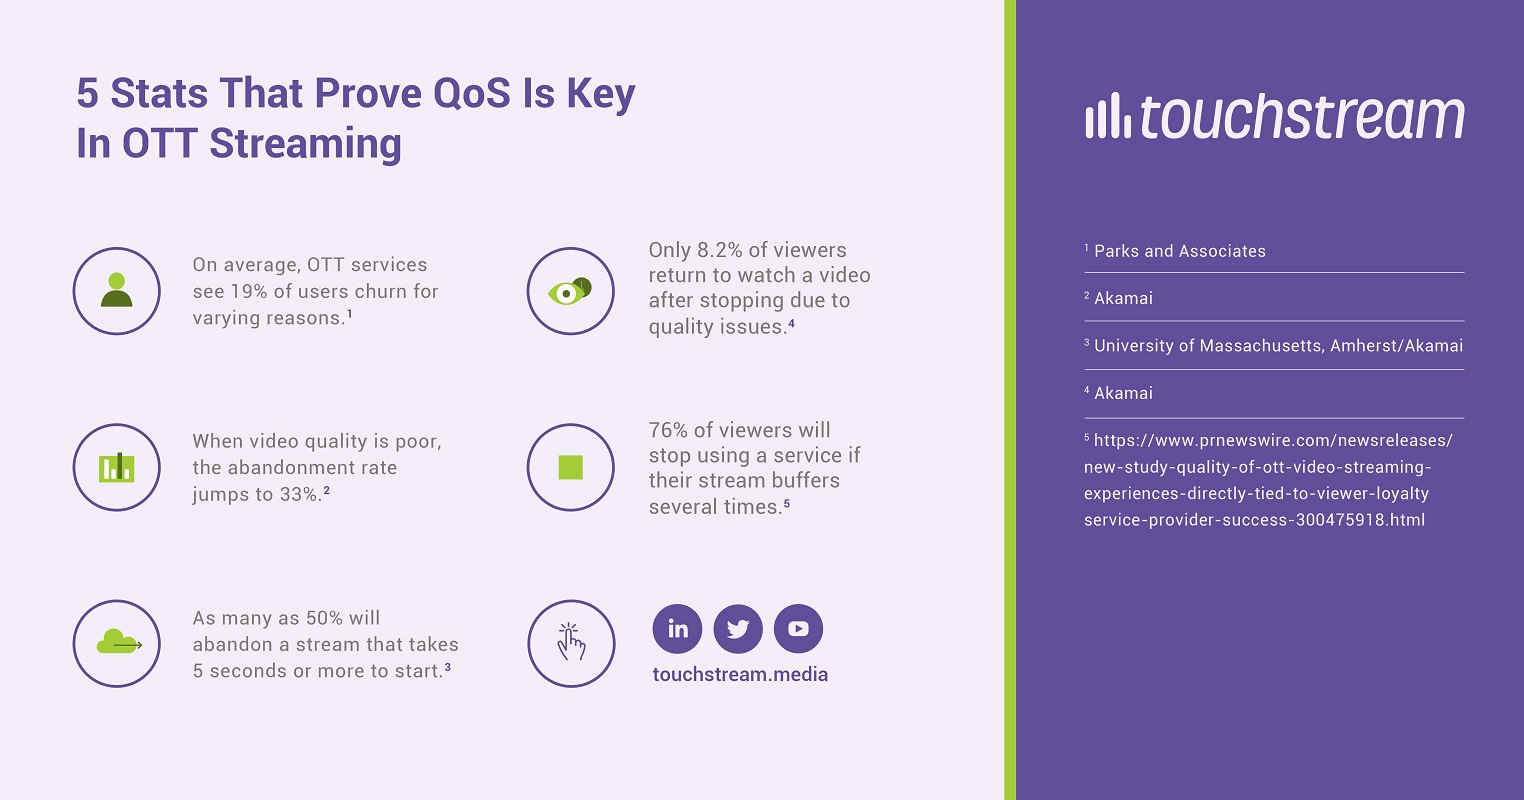 5 stats that prove QoS is key in ott streaming - OTT End-to-End Problem Management - Touchstream